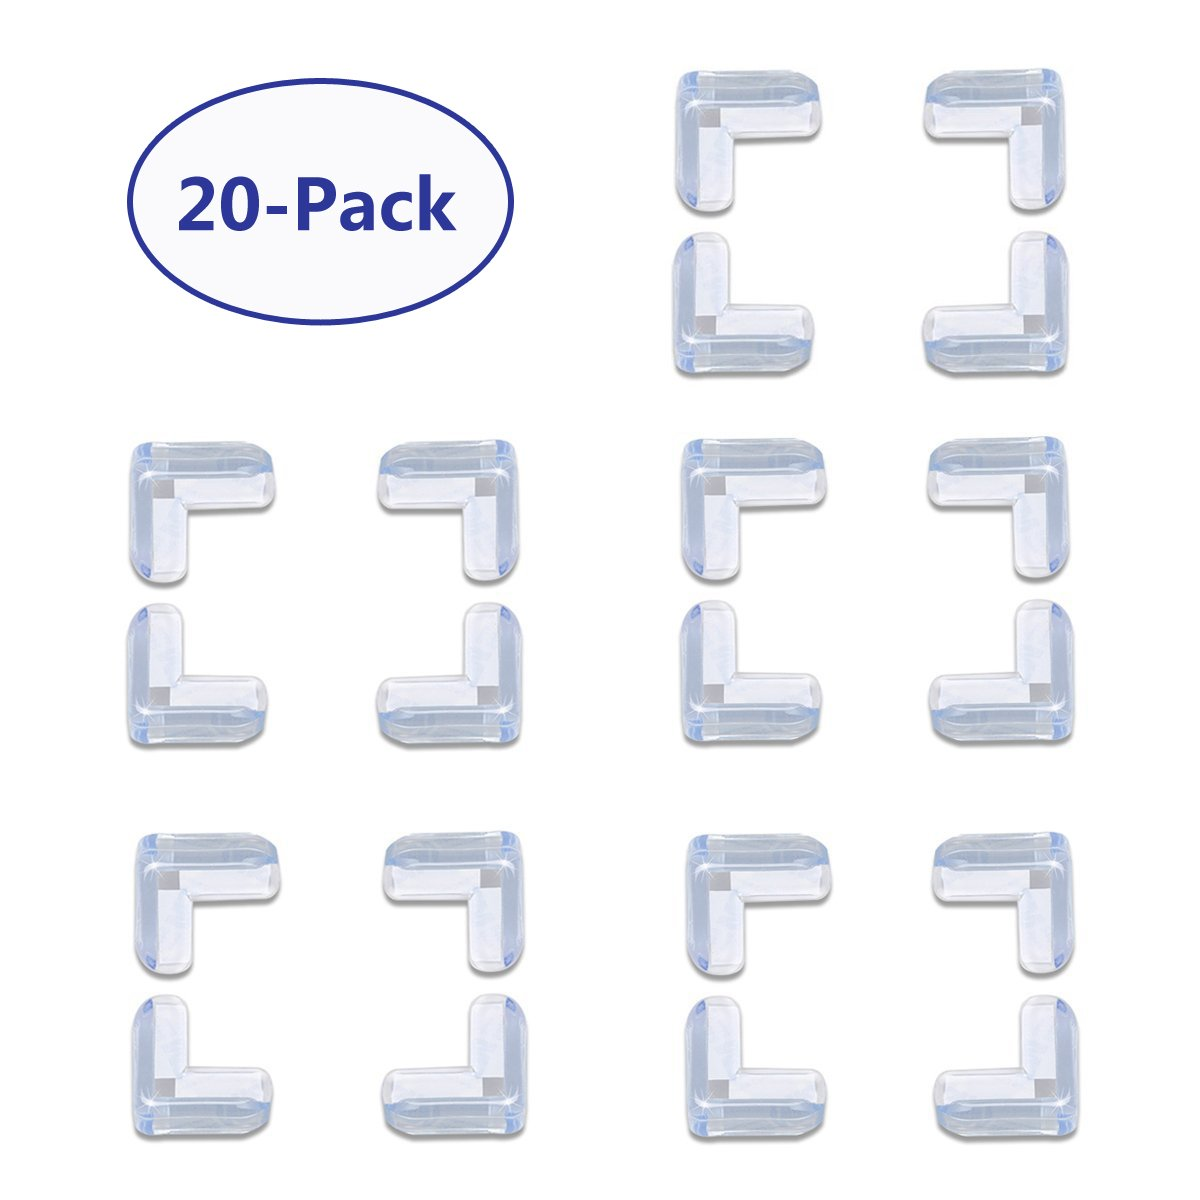 SunTrade 20-Pack Baby Proof Corner Guards,Clear Corner Protectors,Tables, Furniture Sharp Corners Baby Proofing (L-Shaped)